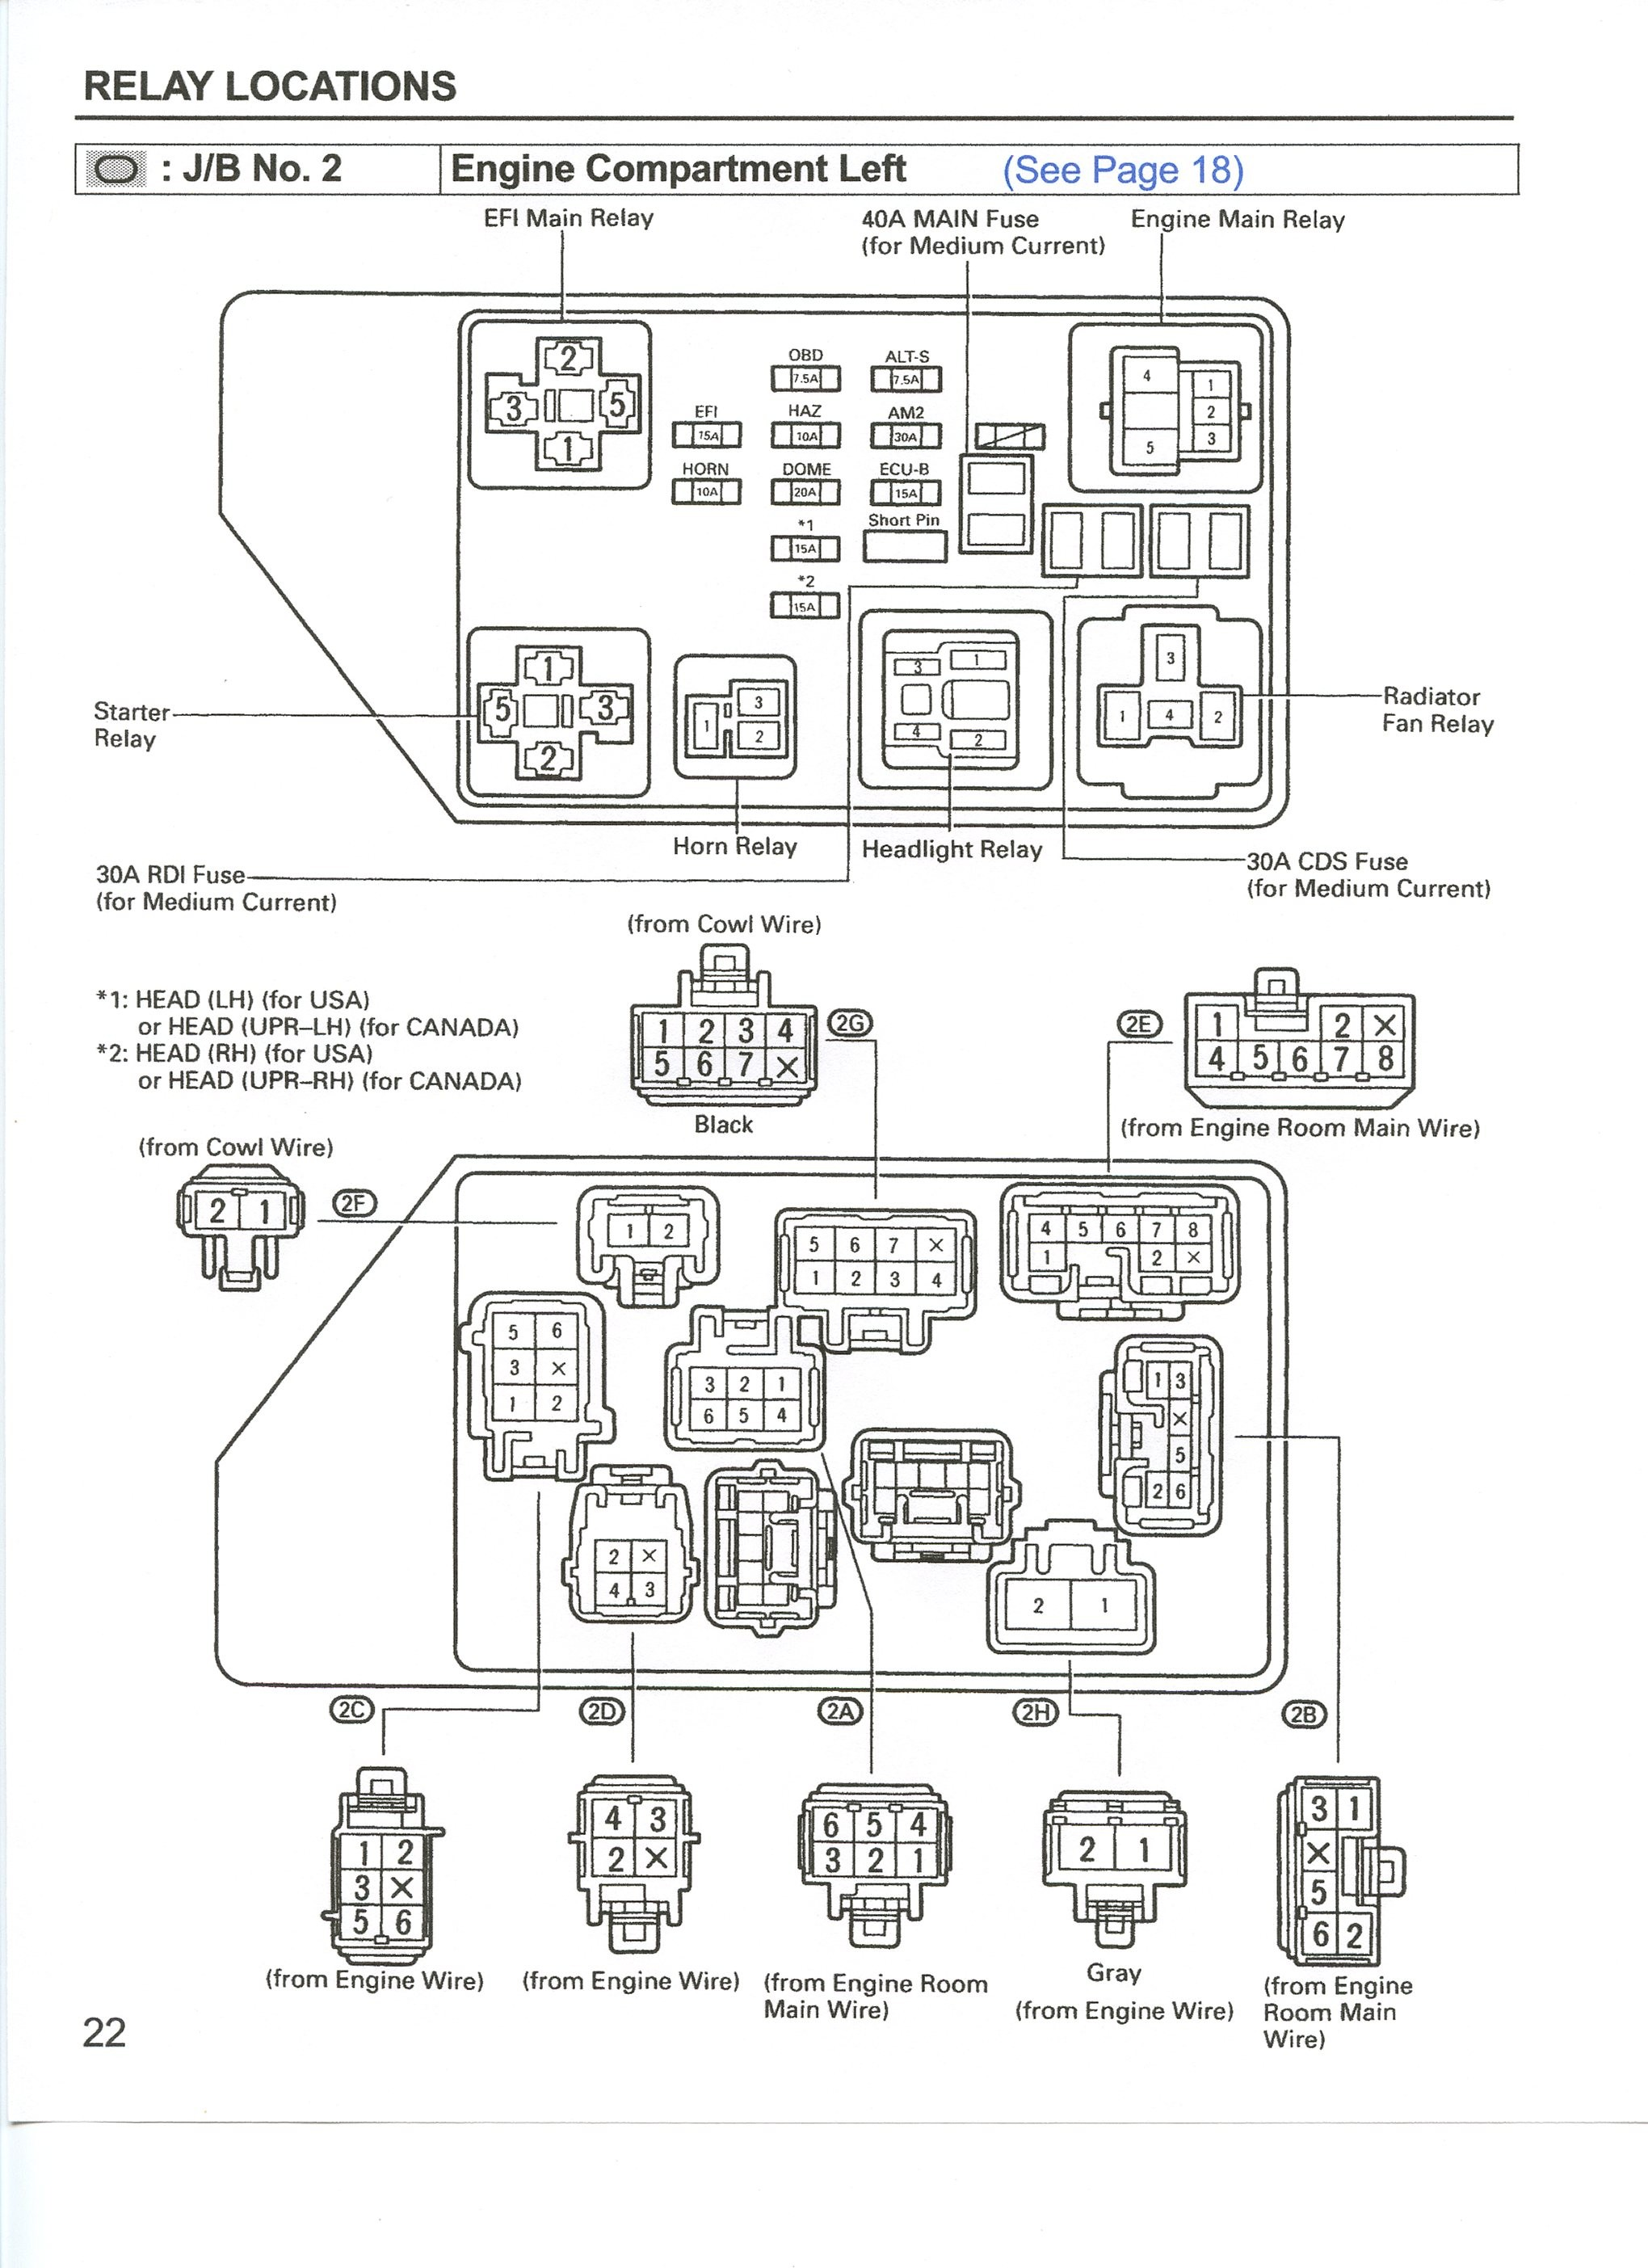 2002 Toyota Corolla Engine Diagram My Wiring 2003 Celica Appealing Electrical